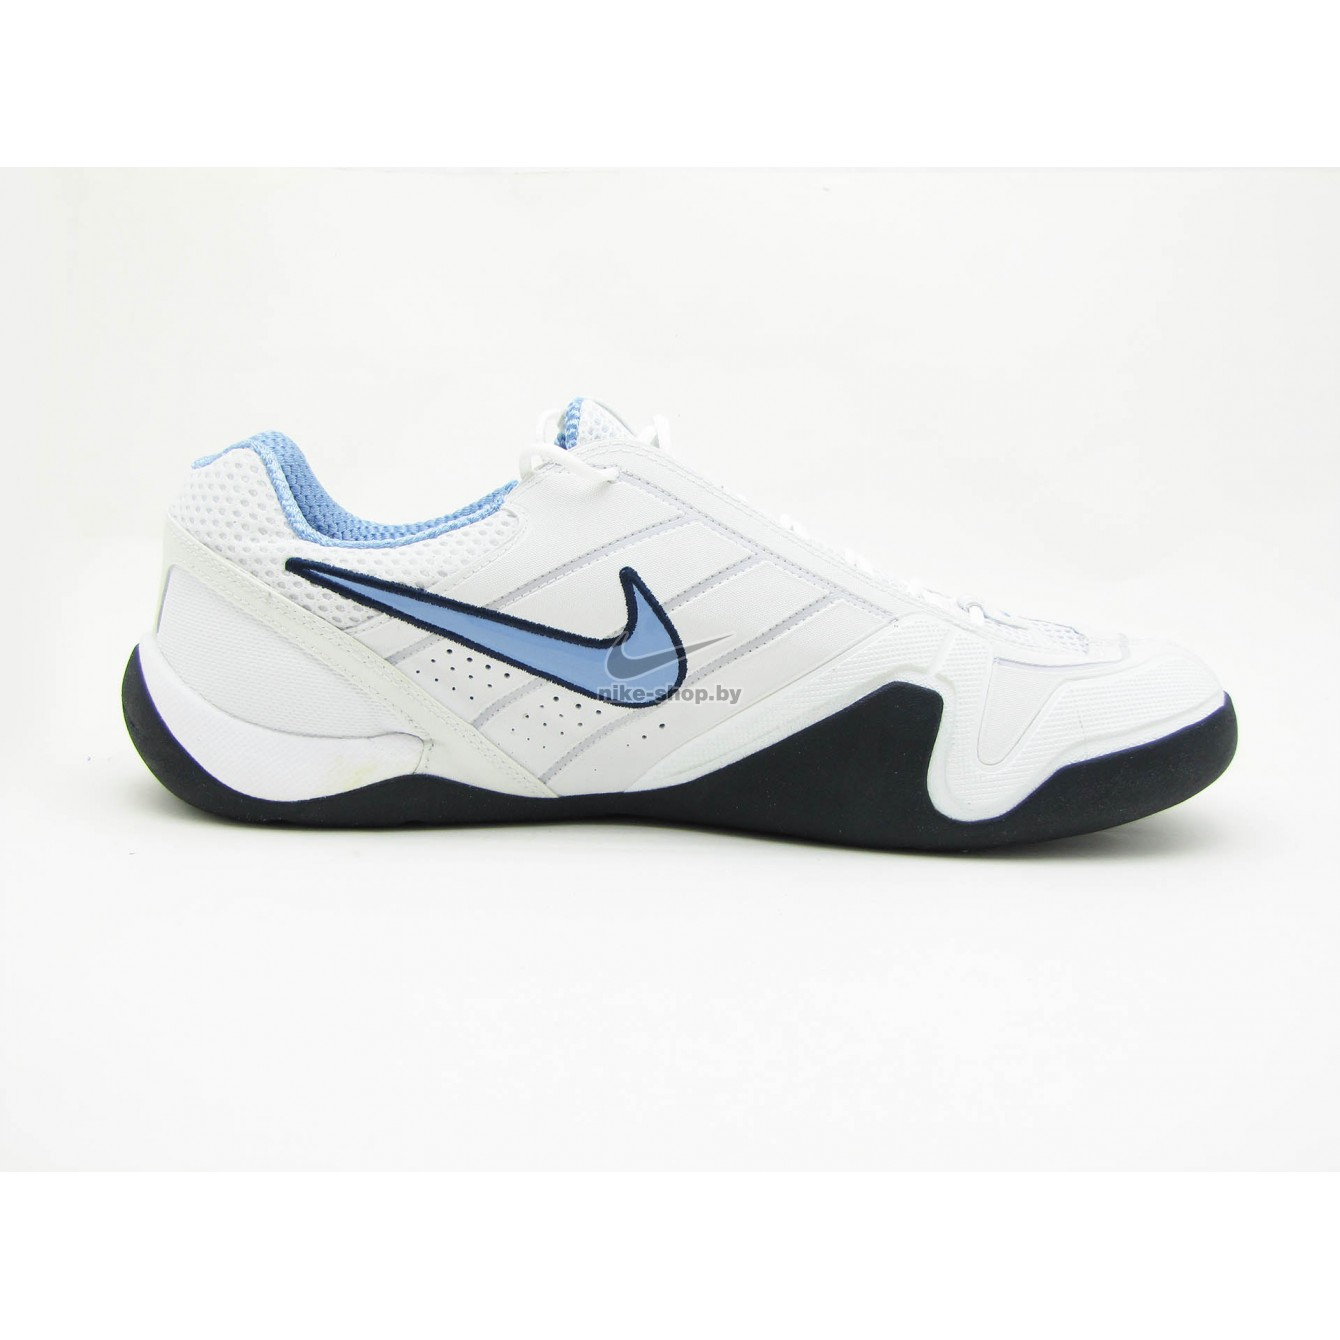 best value price reduced release date: Обувь для фехтования NIKE AIR ZOOM FENCER